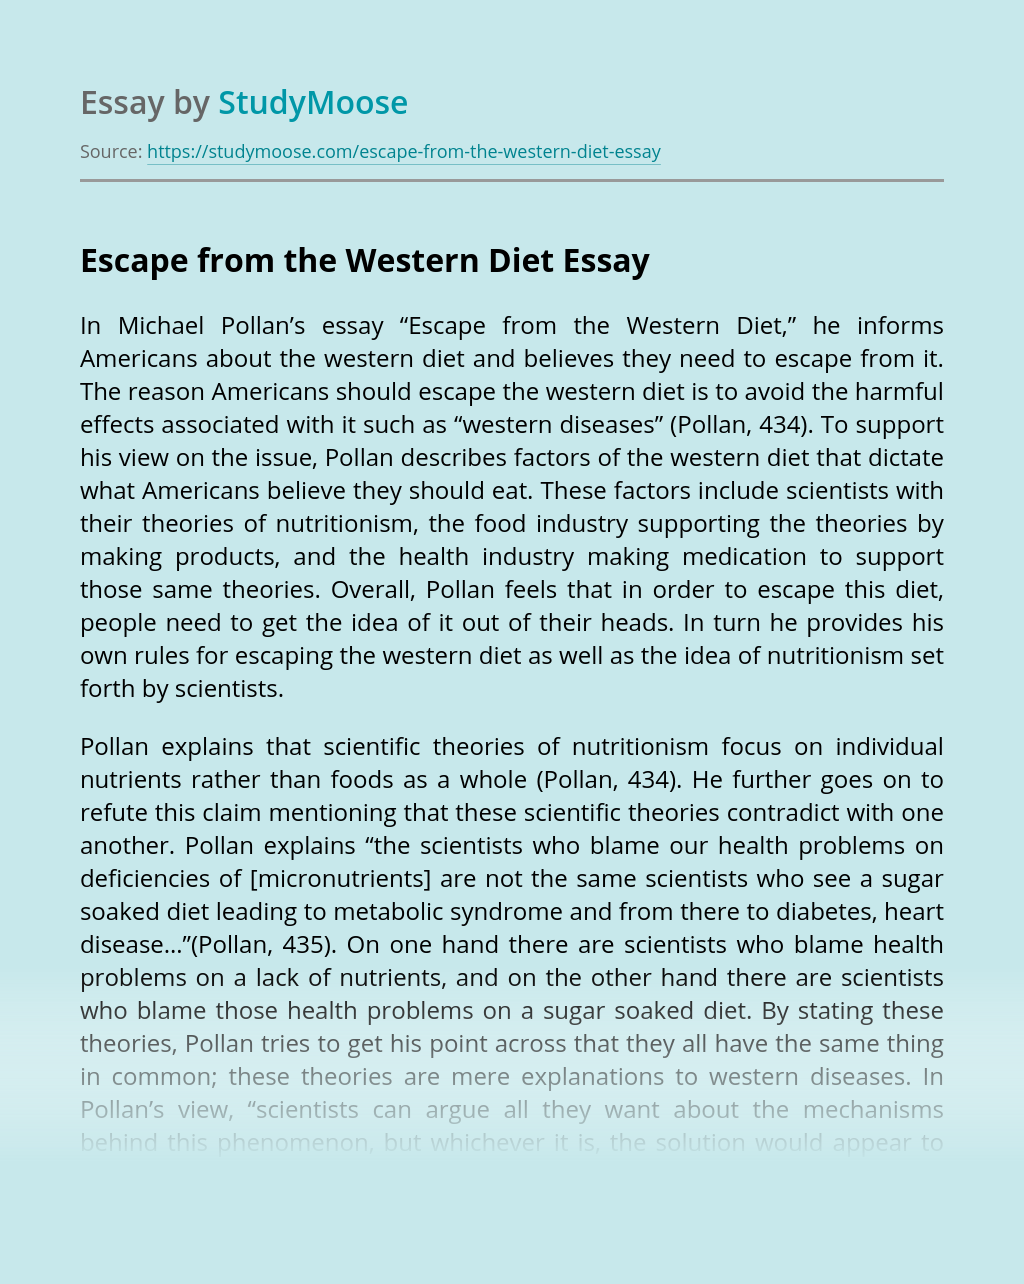 Escape from the Western Diet